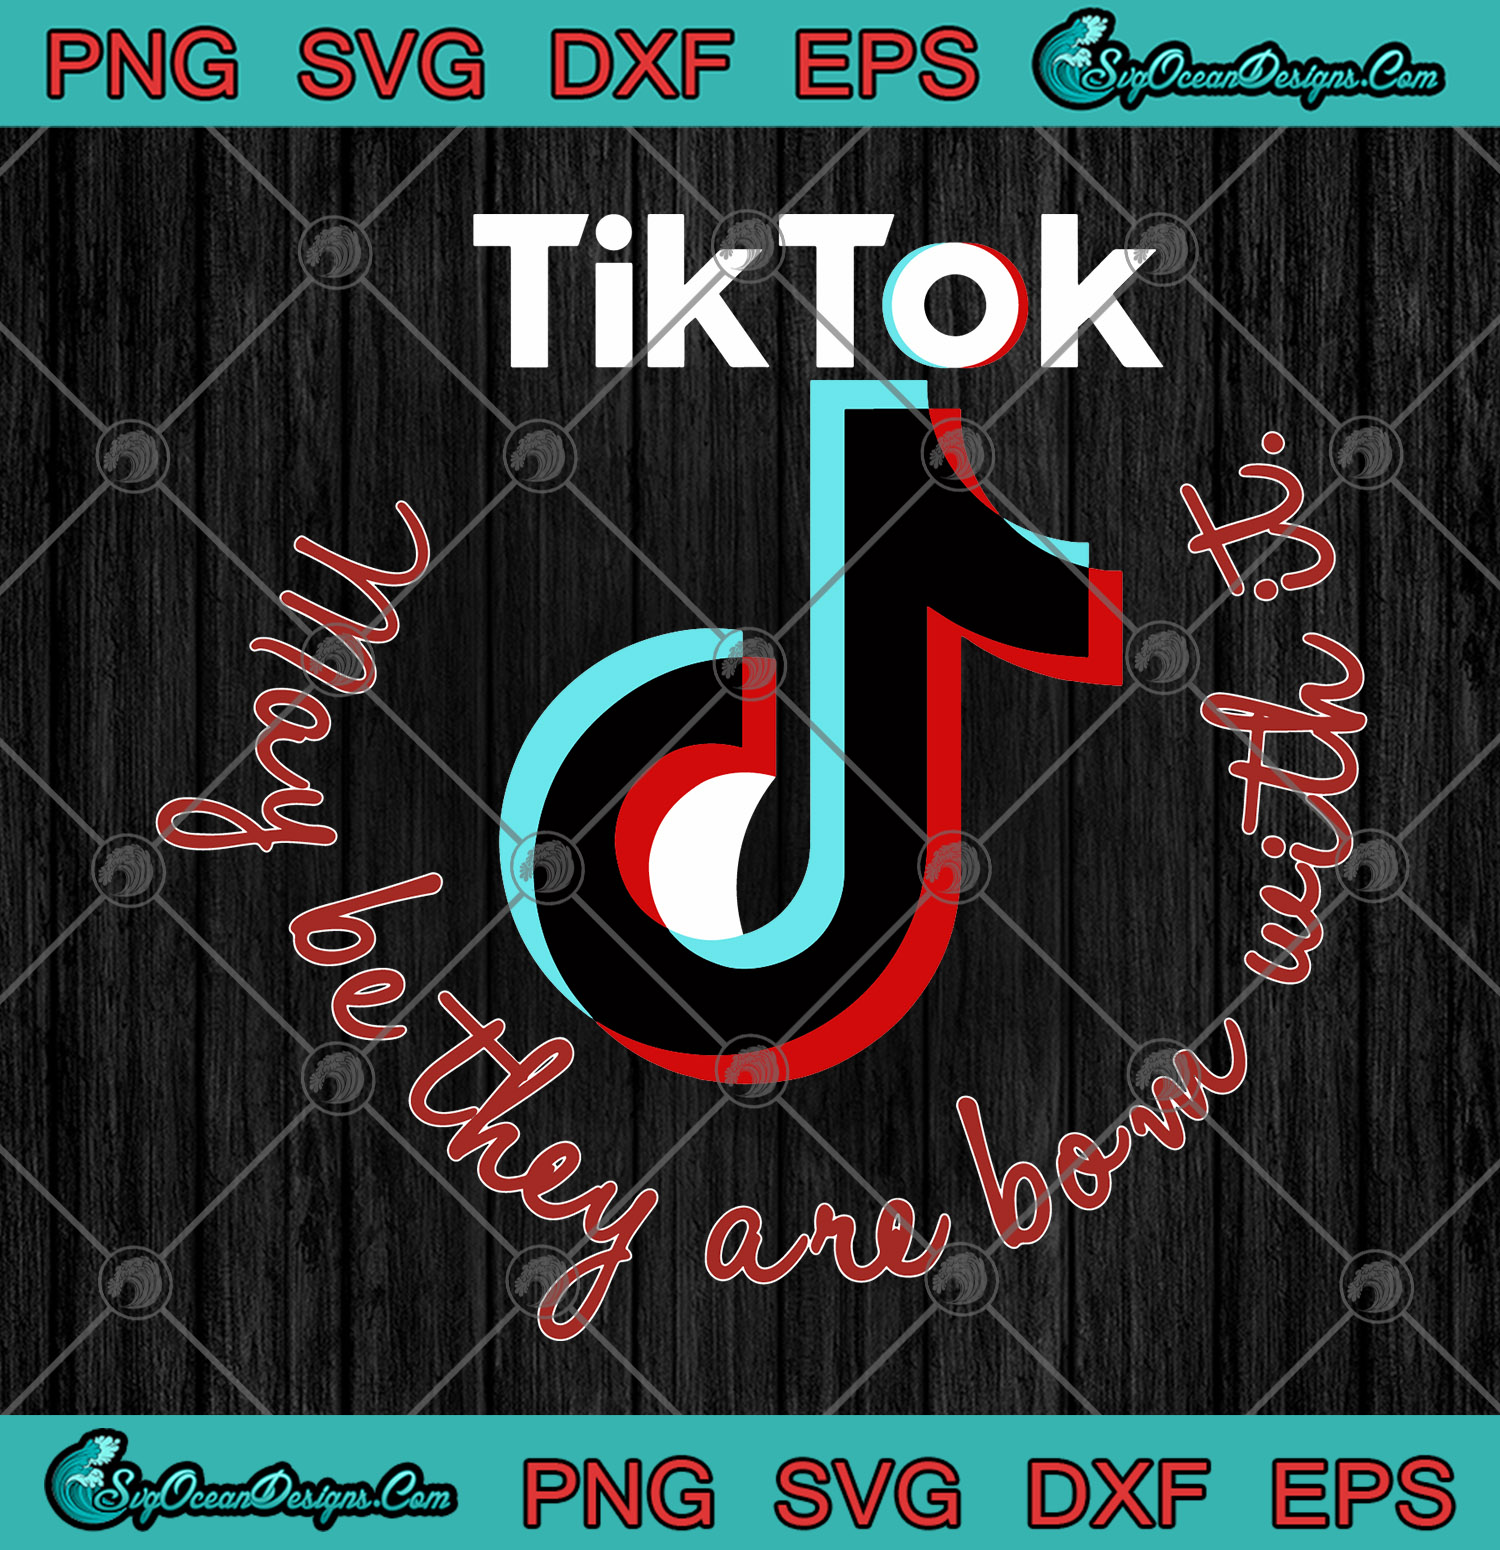 Tiktok May Be They Are Bom With It Svg Png Eps Dxf Cutting File Cricut Silhouette Art Designs Digital Download